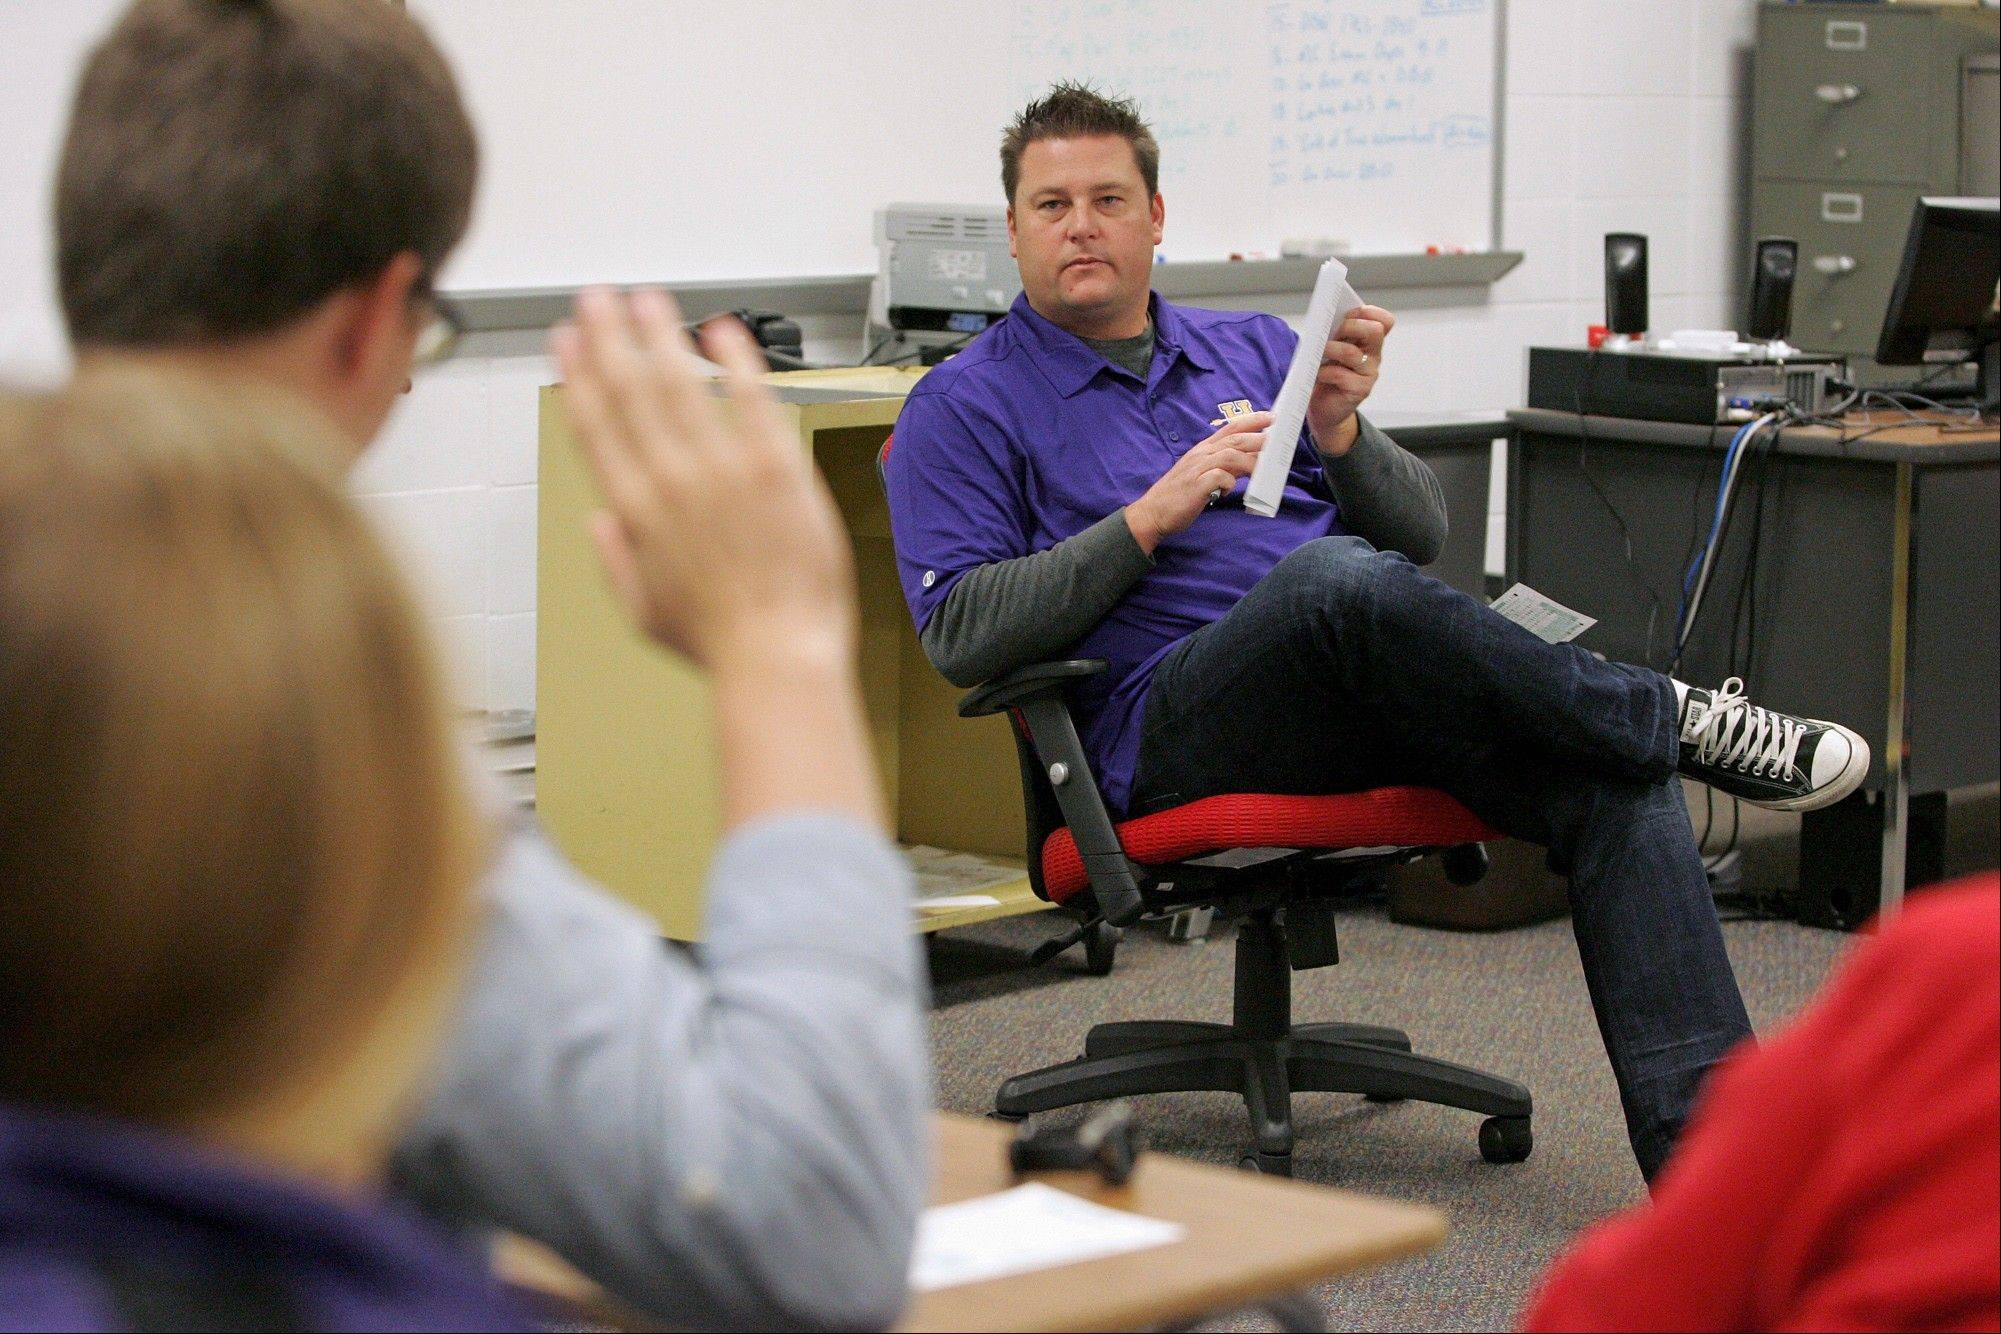 History teacher James Sabathne reviews a test with students during an Advanced Placement U.S. History class at Hononegah High School in Rockton. A group of educators has been redesigning the framework of the AP U.S. History course for the last five years.